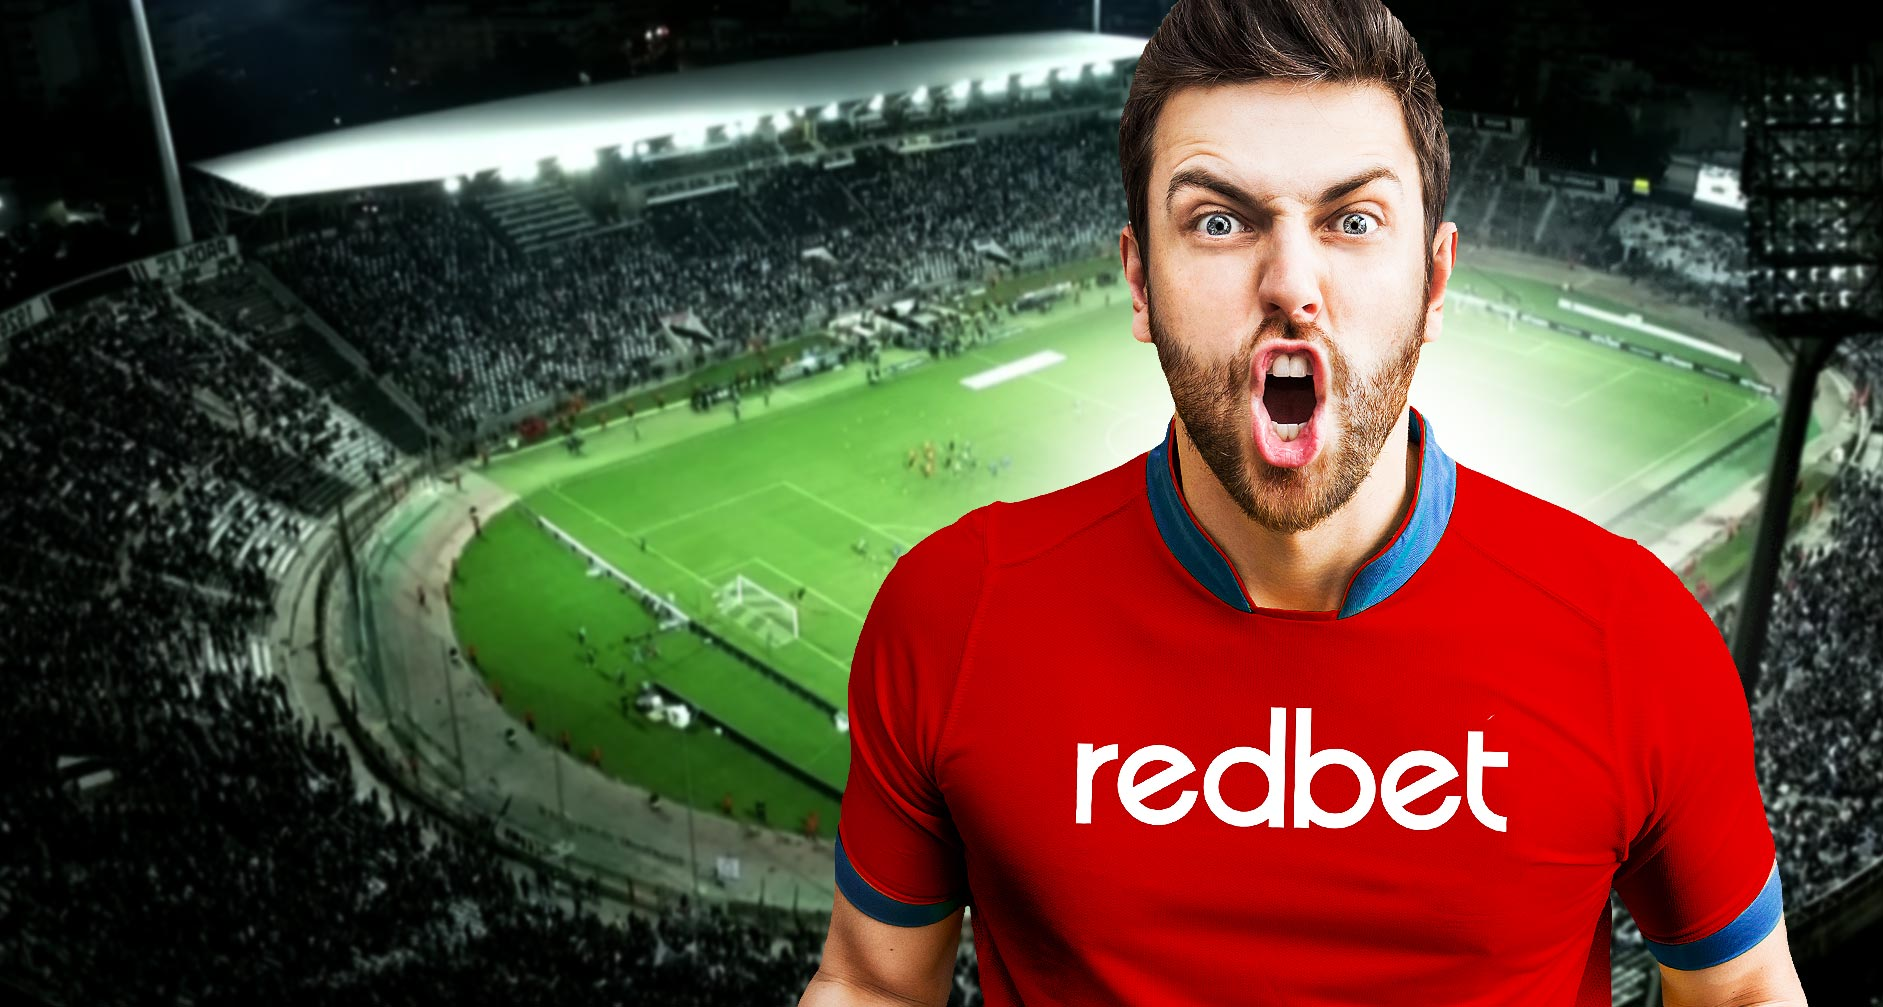 ## Catch up to £20 free bet!